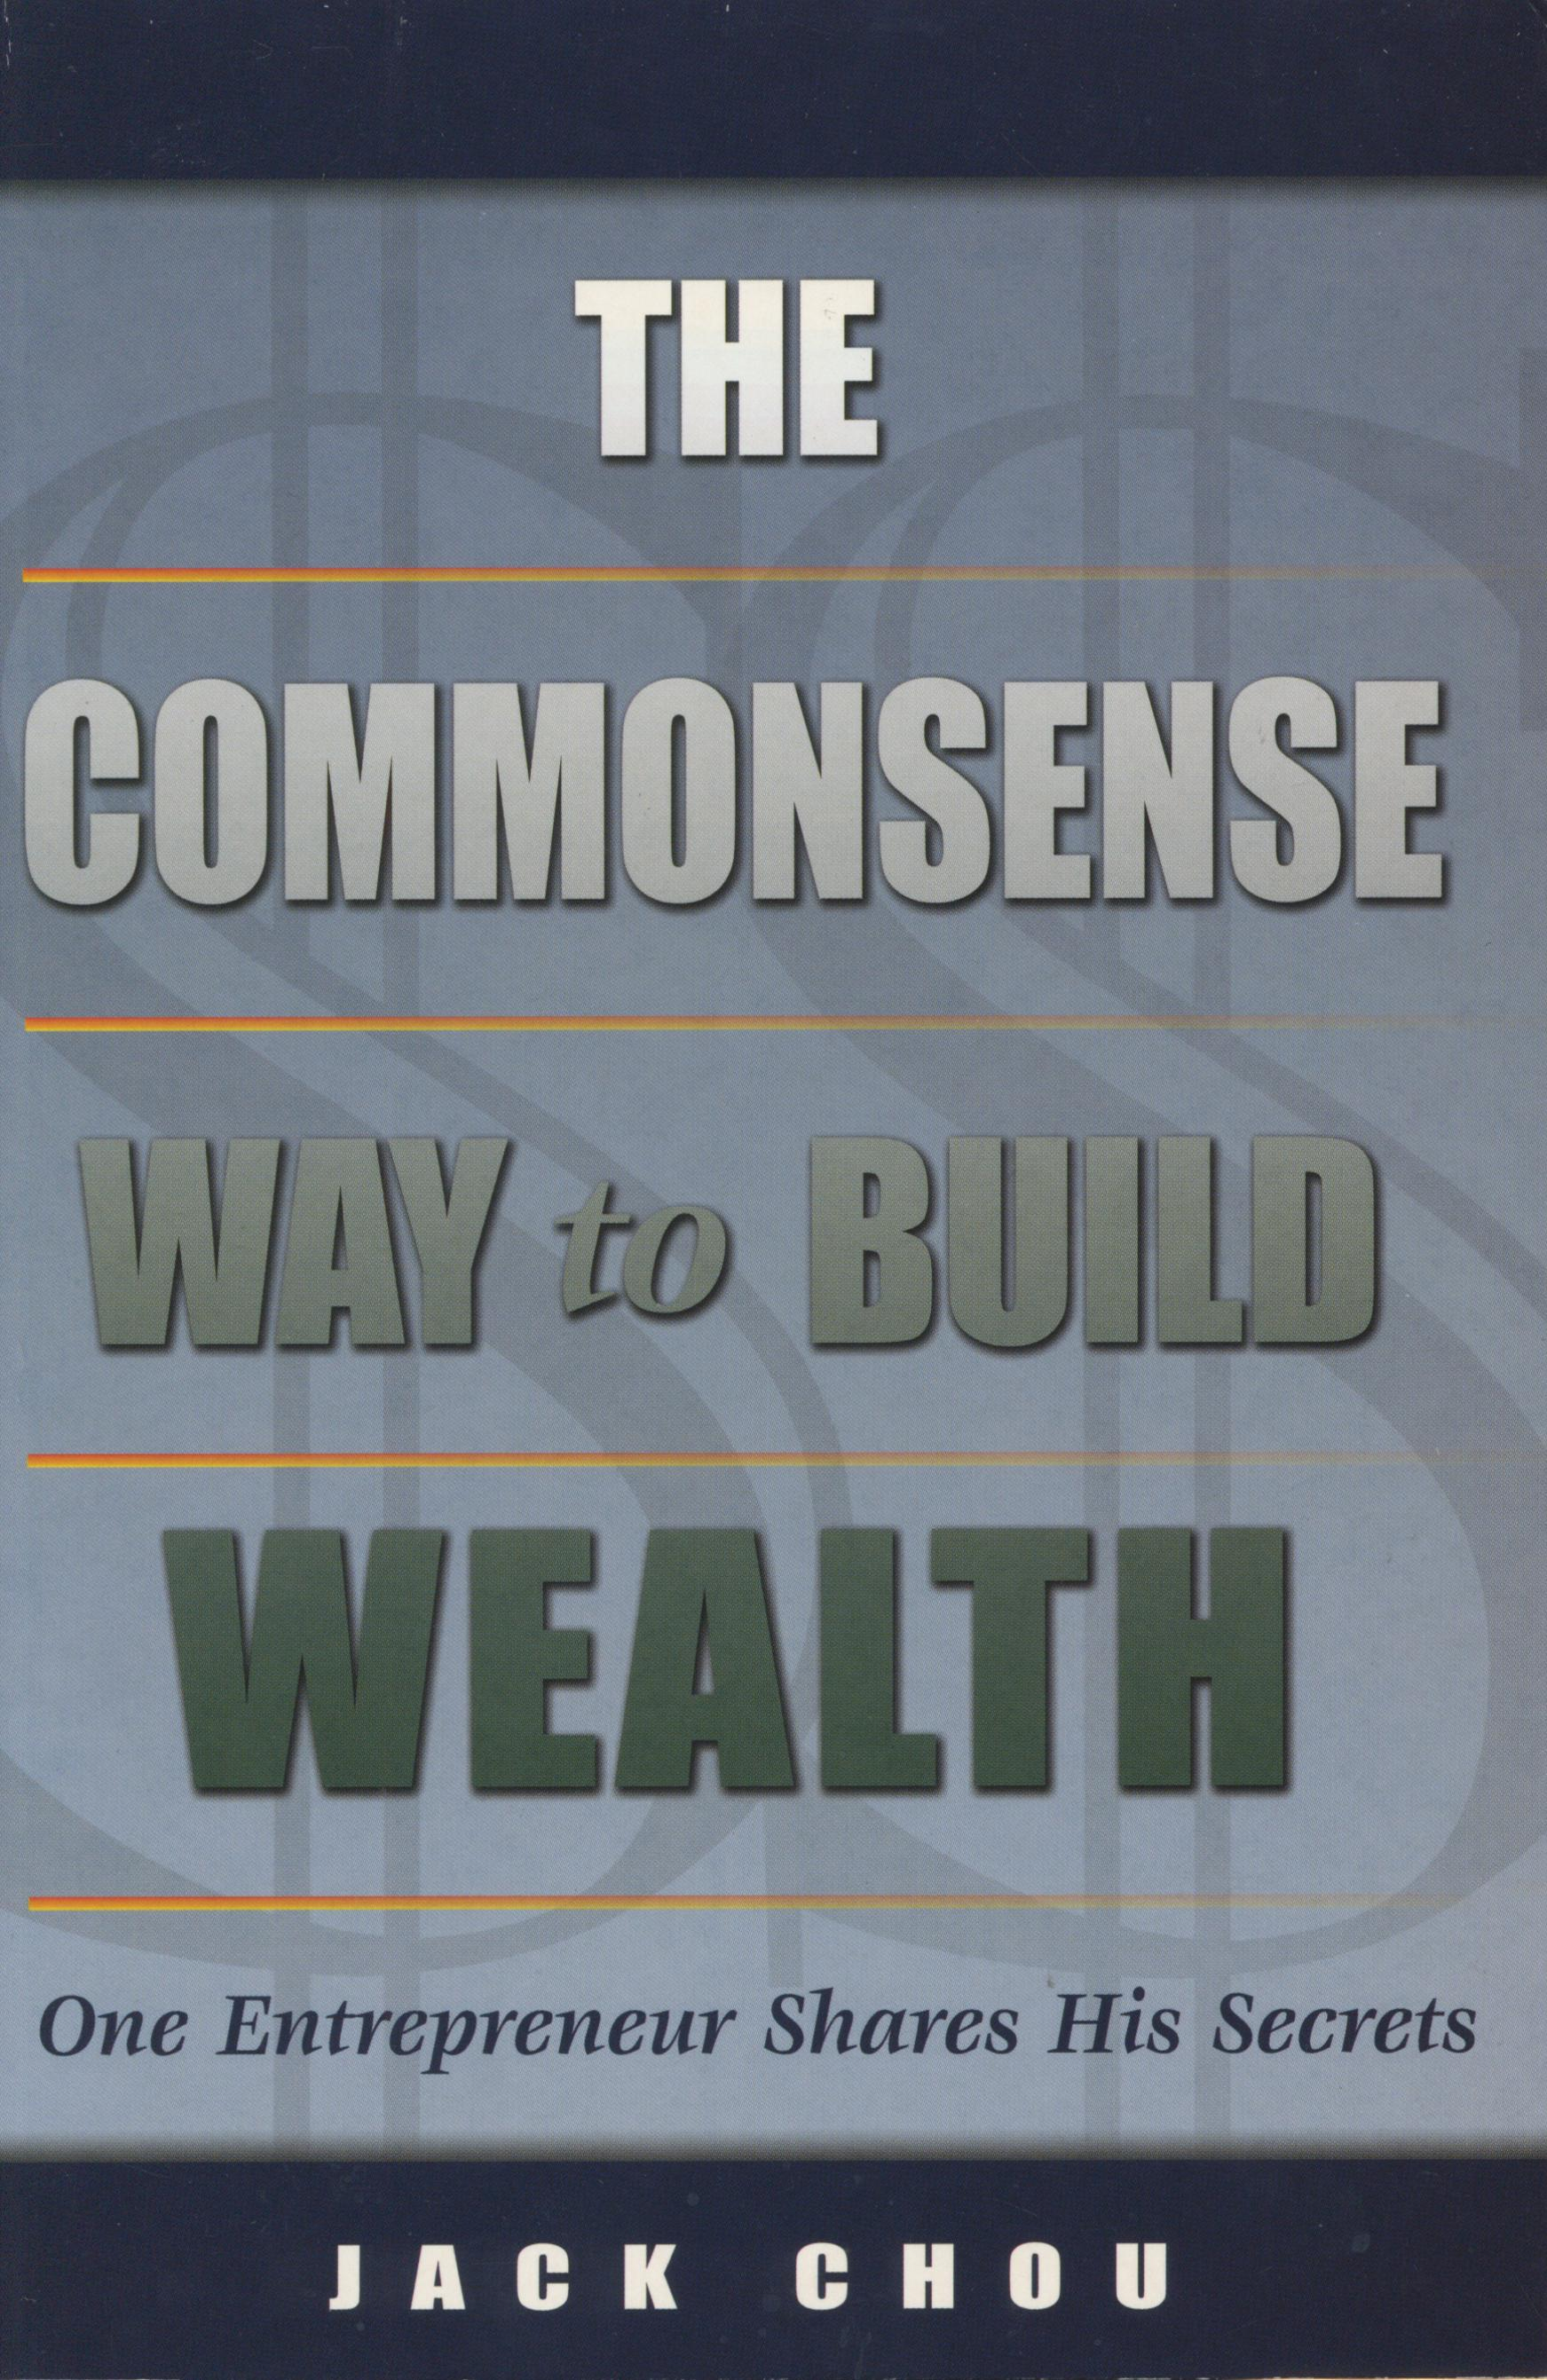 1284. The Commonsense Way to Build Wealth/Jack Chou/2004